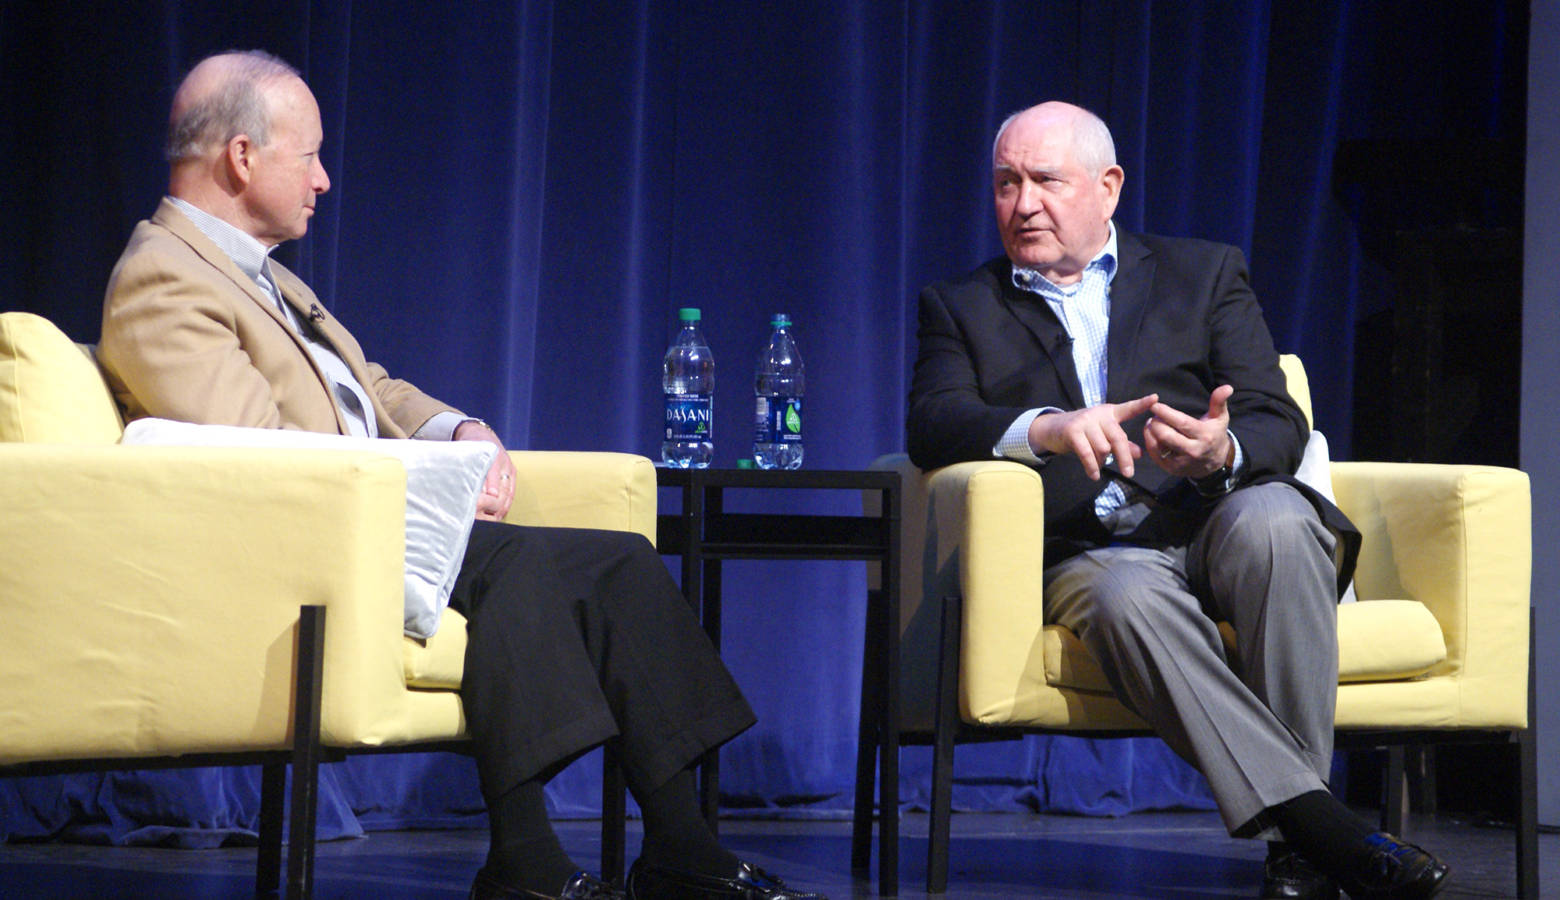 Purdue University President Mitch Daniels talk with U.S. Secretary of Agriculture Sonny Perdue on a variety of issues impacting the agricultural industry. (Samantha Horton/IPB News)